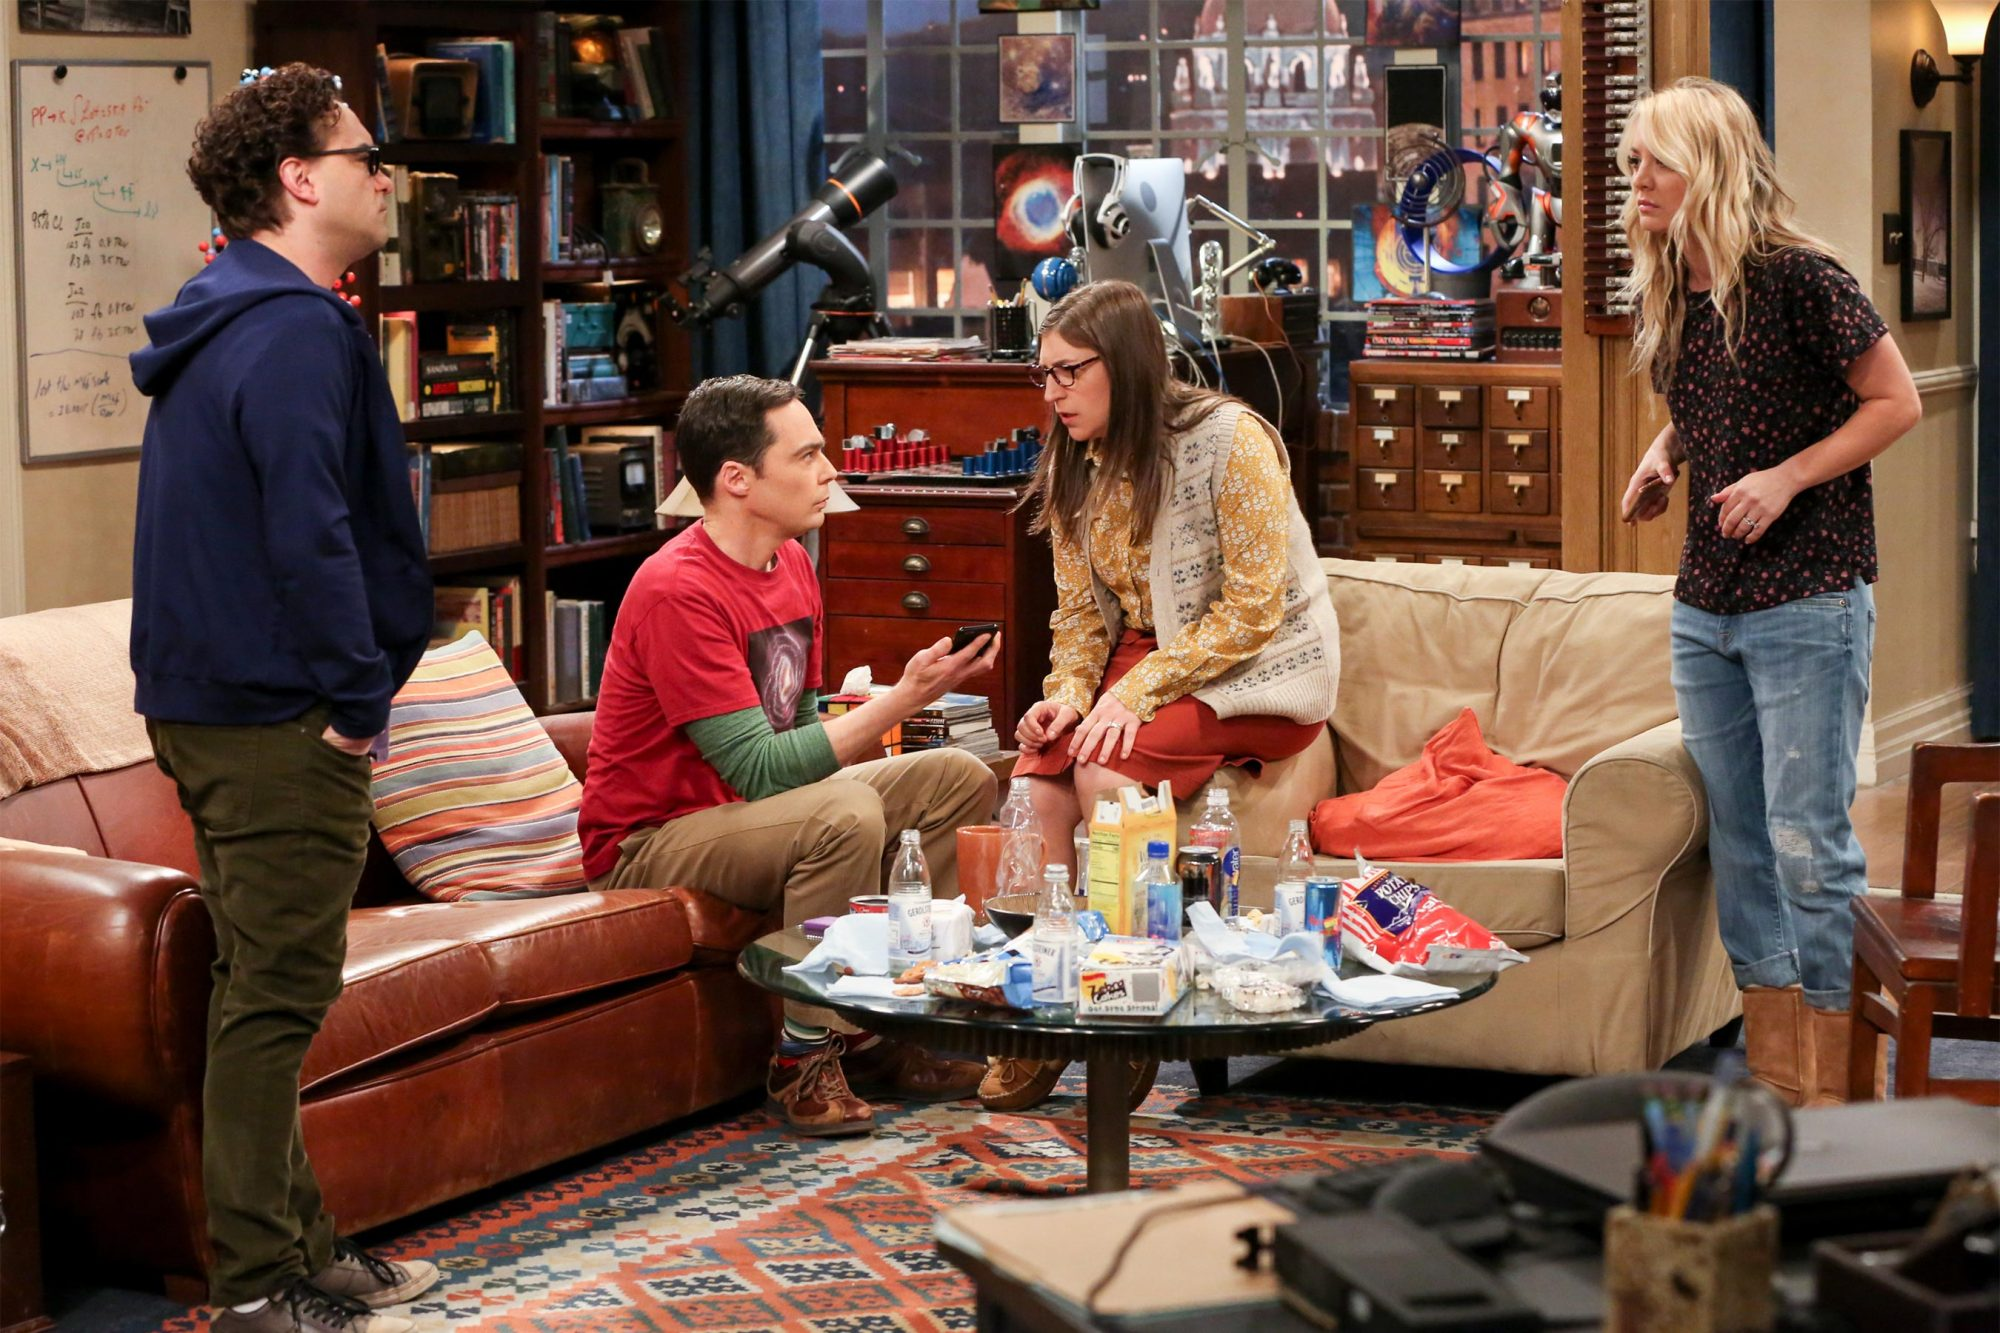 """""""The Change Constant"""" - Pictured: Leonard Hofstadter (Johnny Galecki), Sheldon Cooper (Jim Parsons), Amy Farrah Fowler (Mayim Bialik) and Penny (Kaley Cuoco). Sheldon and Amy await big news, on the series finale of THE BIG BANG THEORY, Thursday, May 16 (8:00-8:30PM, ET/PT) on the CBS Television Network. Photo: Michael Yarish/Warner Bros. Entertainment Inc. © 2019 WBEI. All rights reserved."""